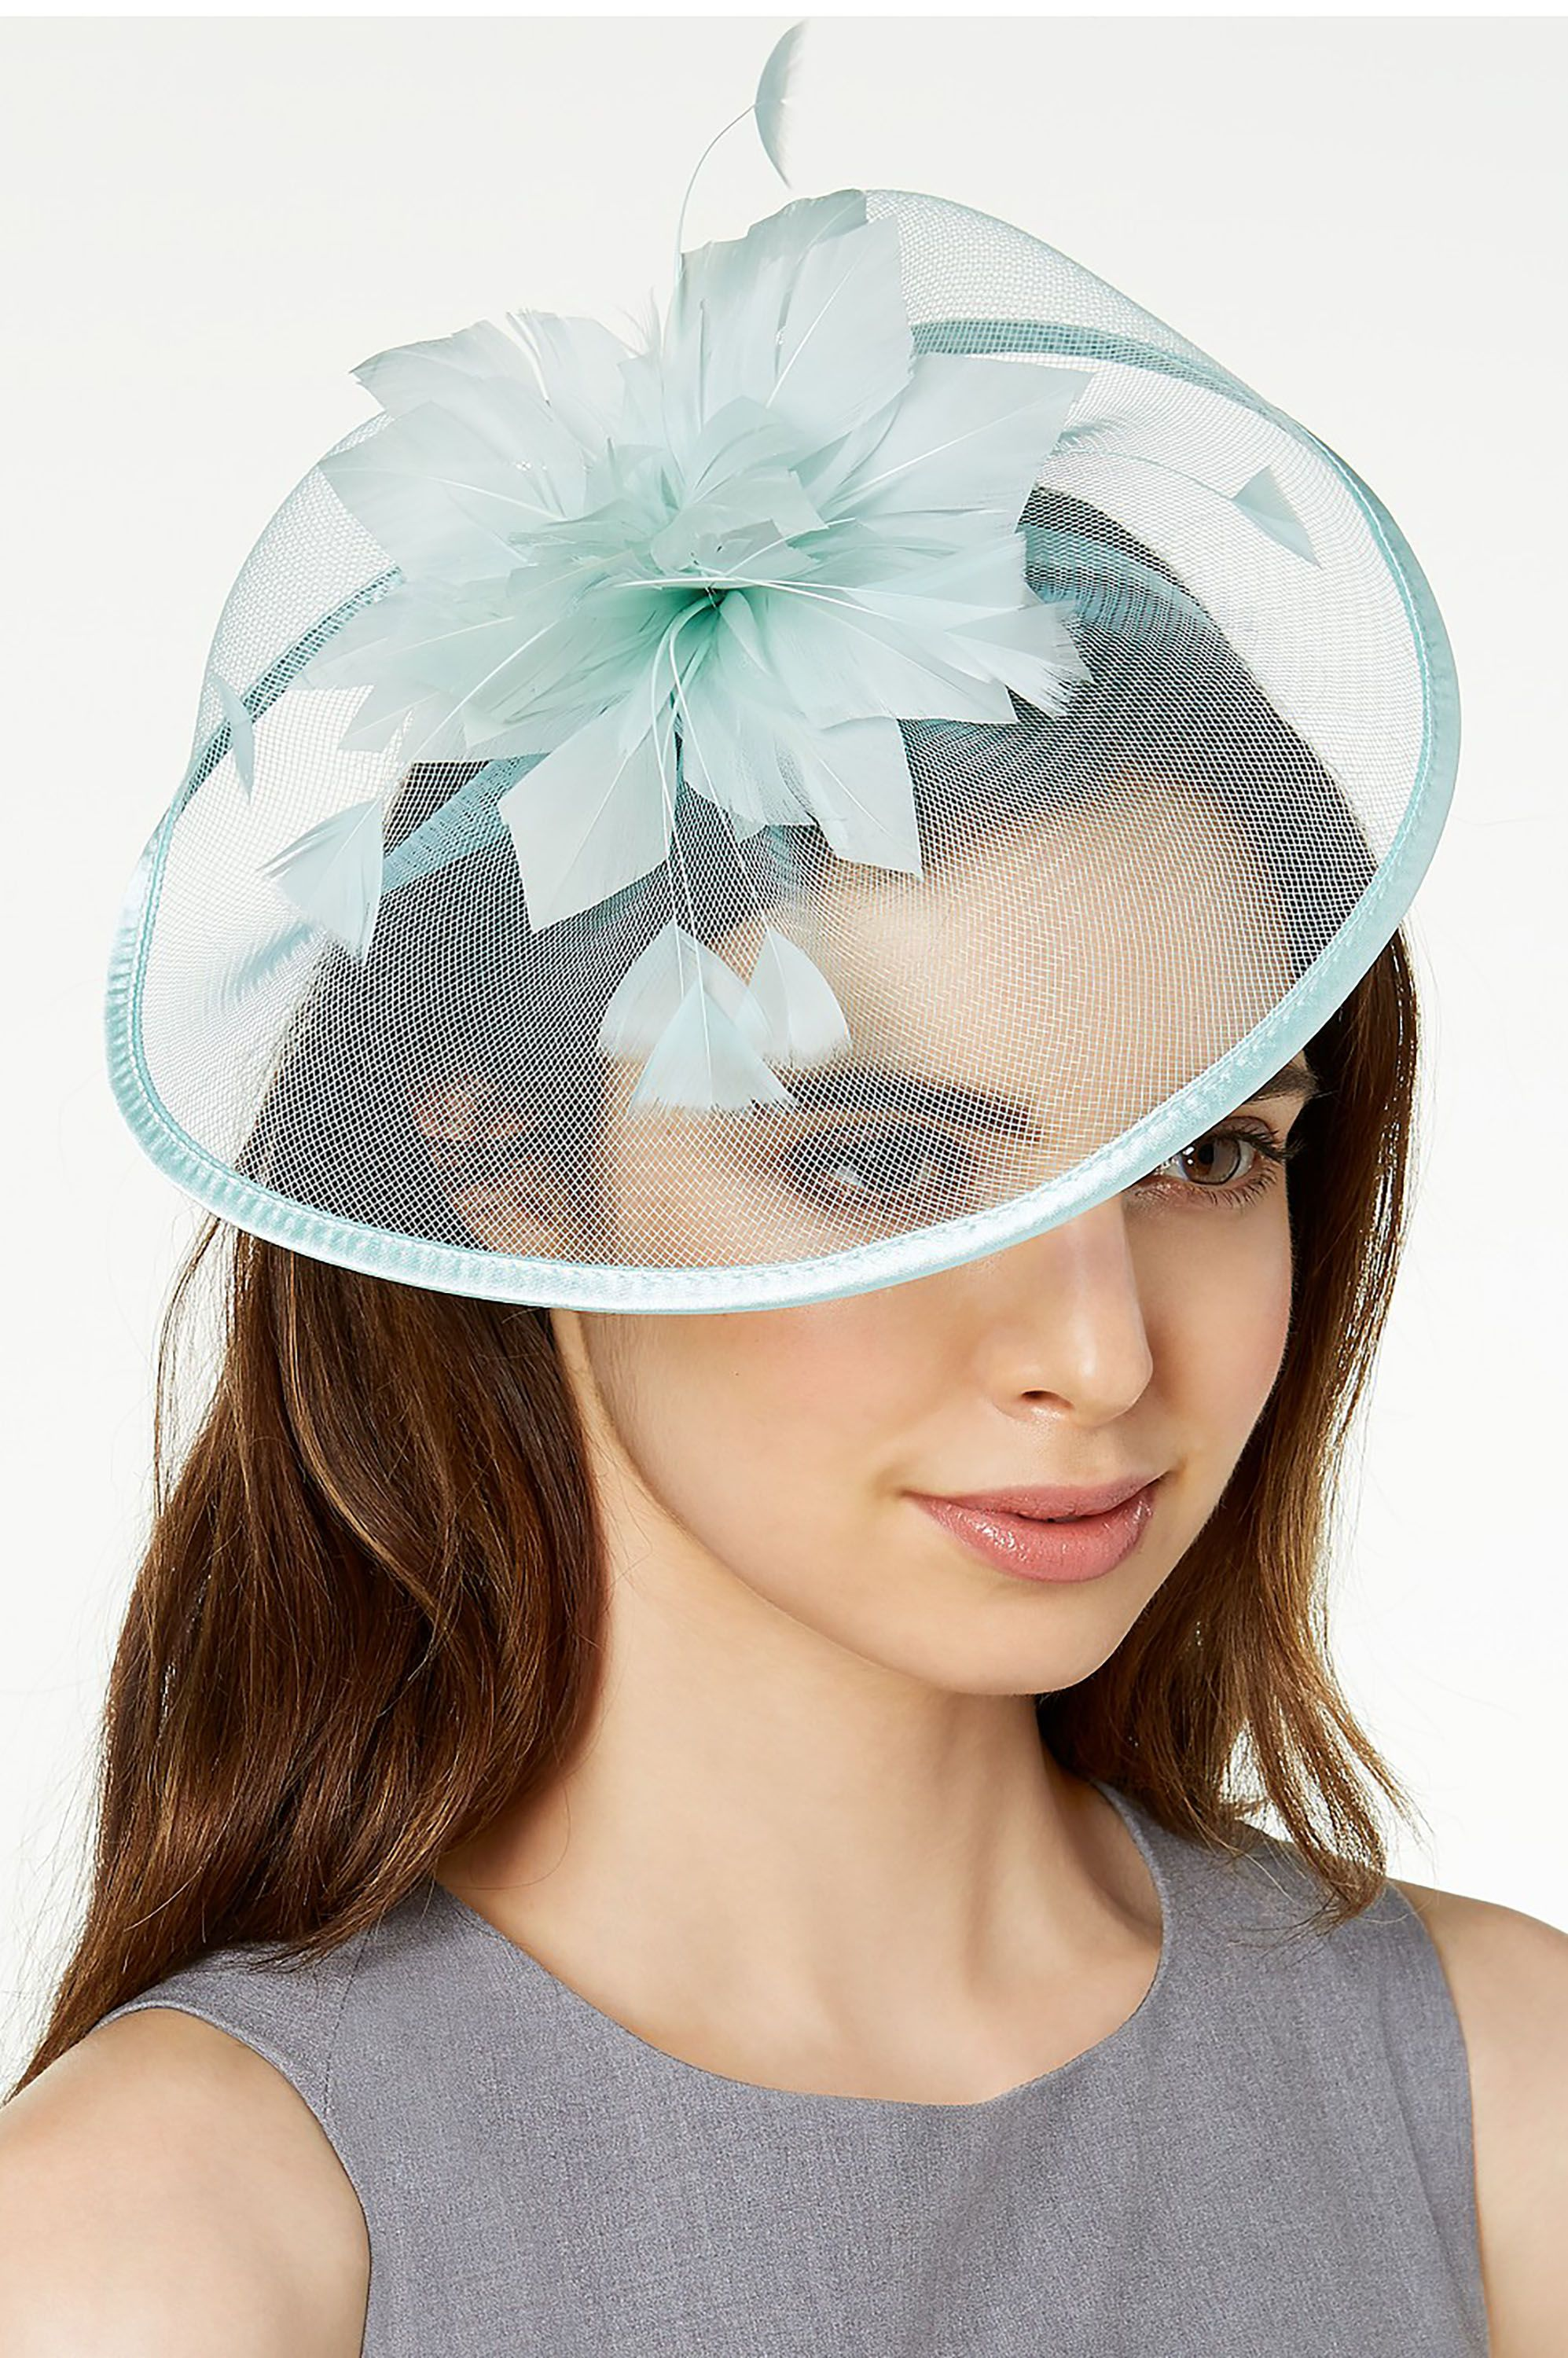 11 Best Kentucky Derby Hats What To Wear For The